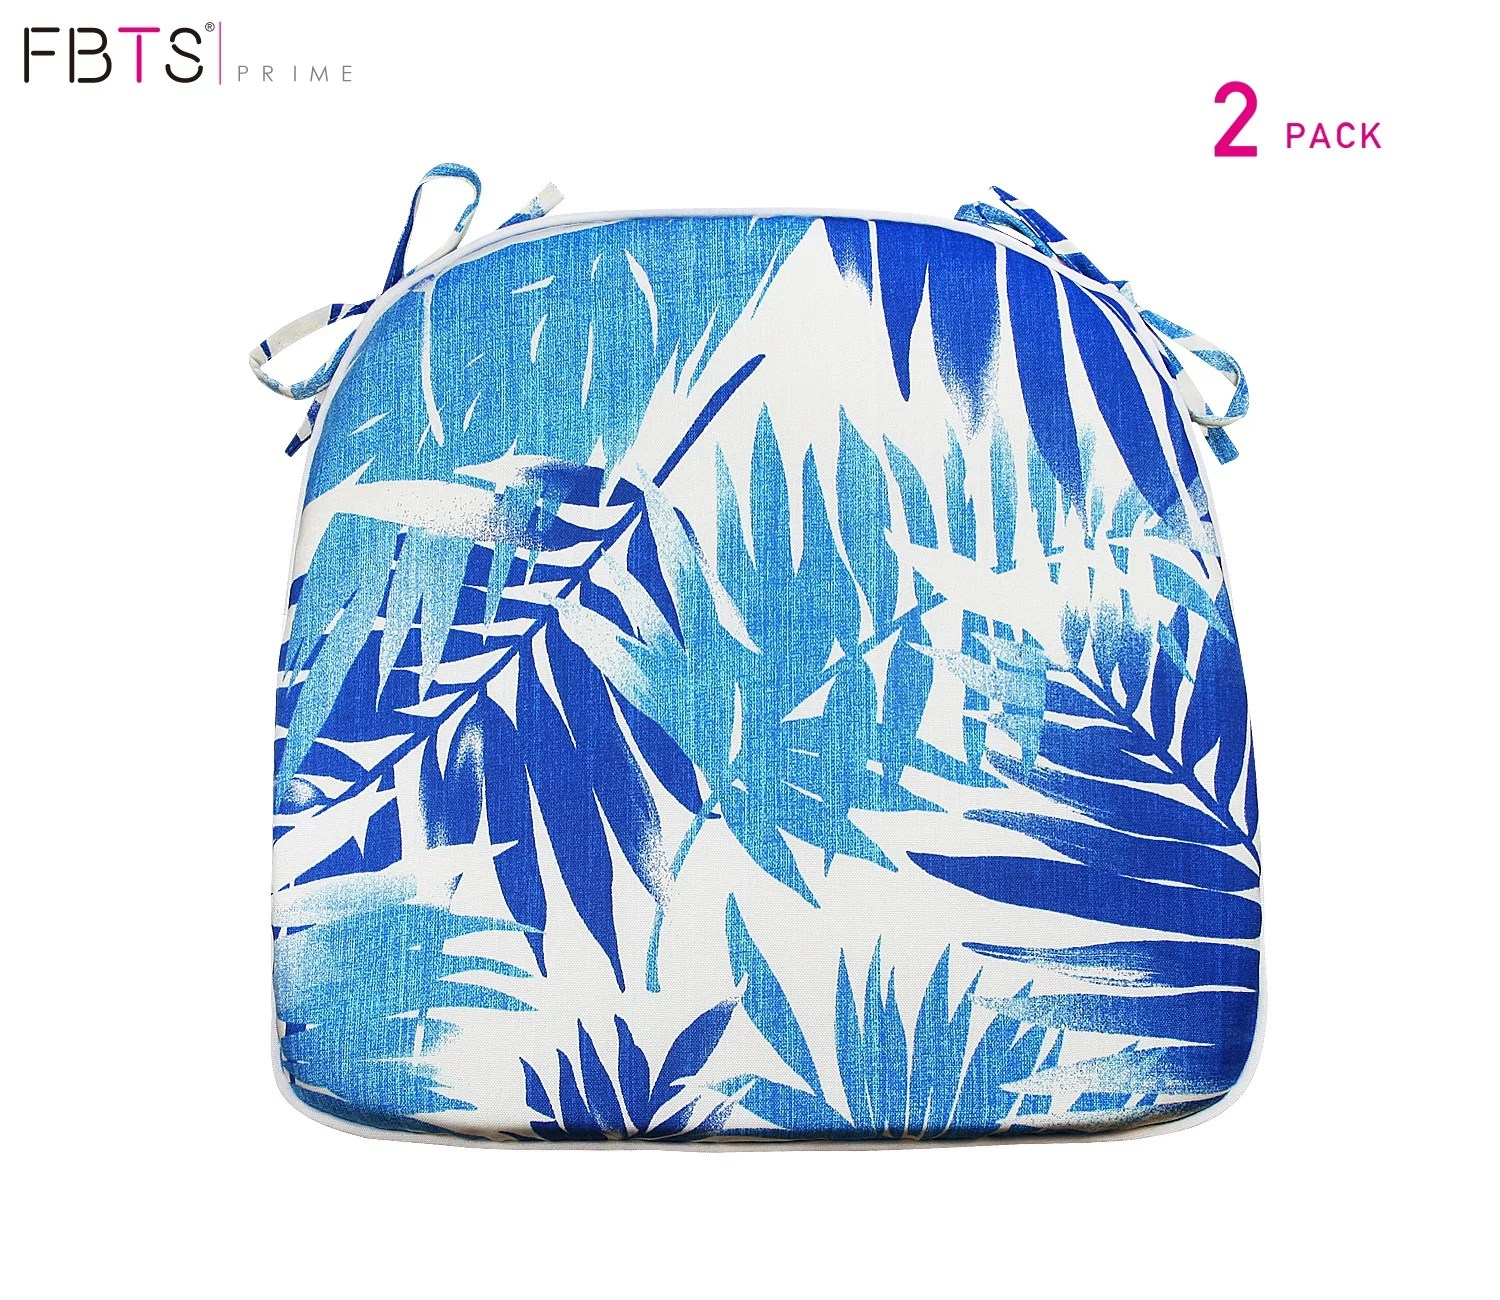 fbts prime outdoor chair cushions set of 2 16x17 inches patio seat cushions blue leaf square chair pads for outdoor patio furniture garden home